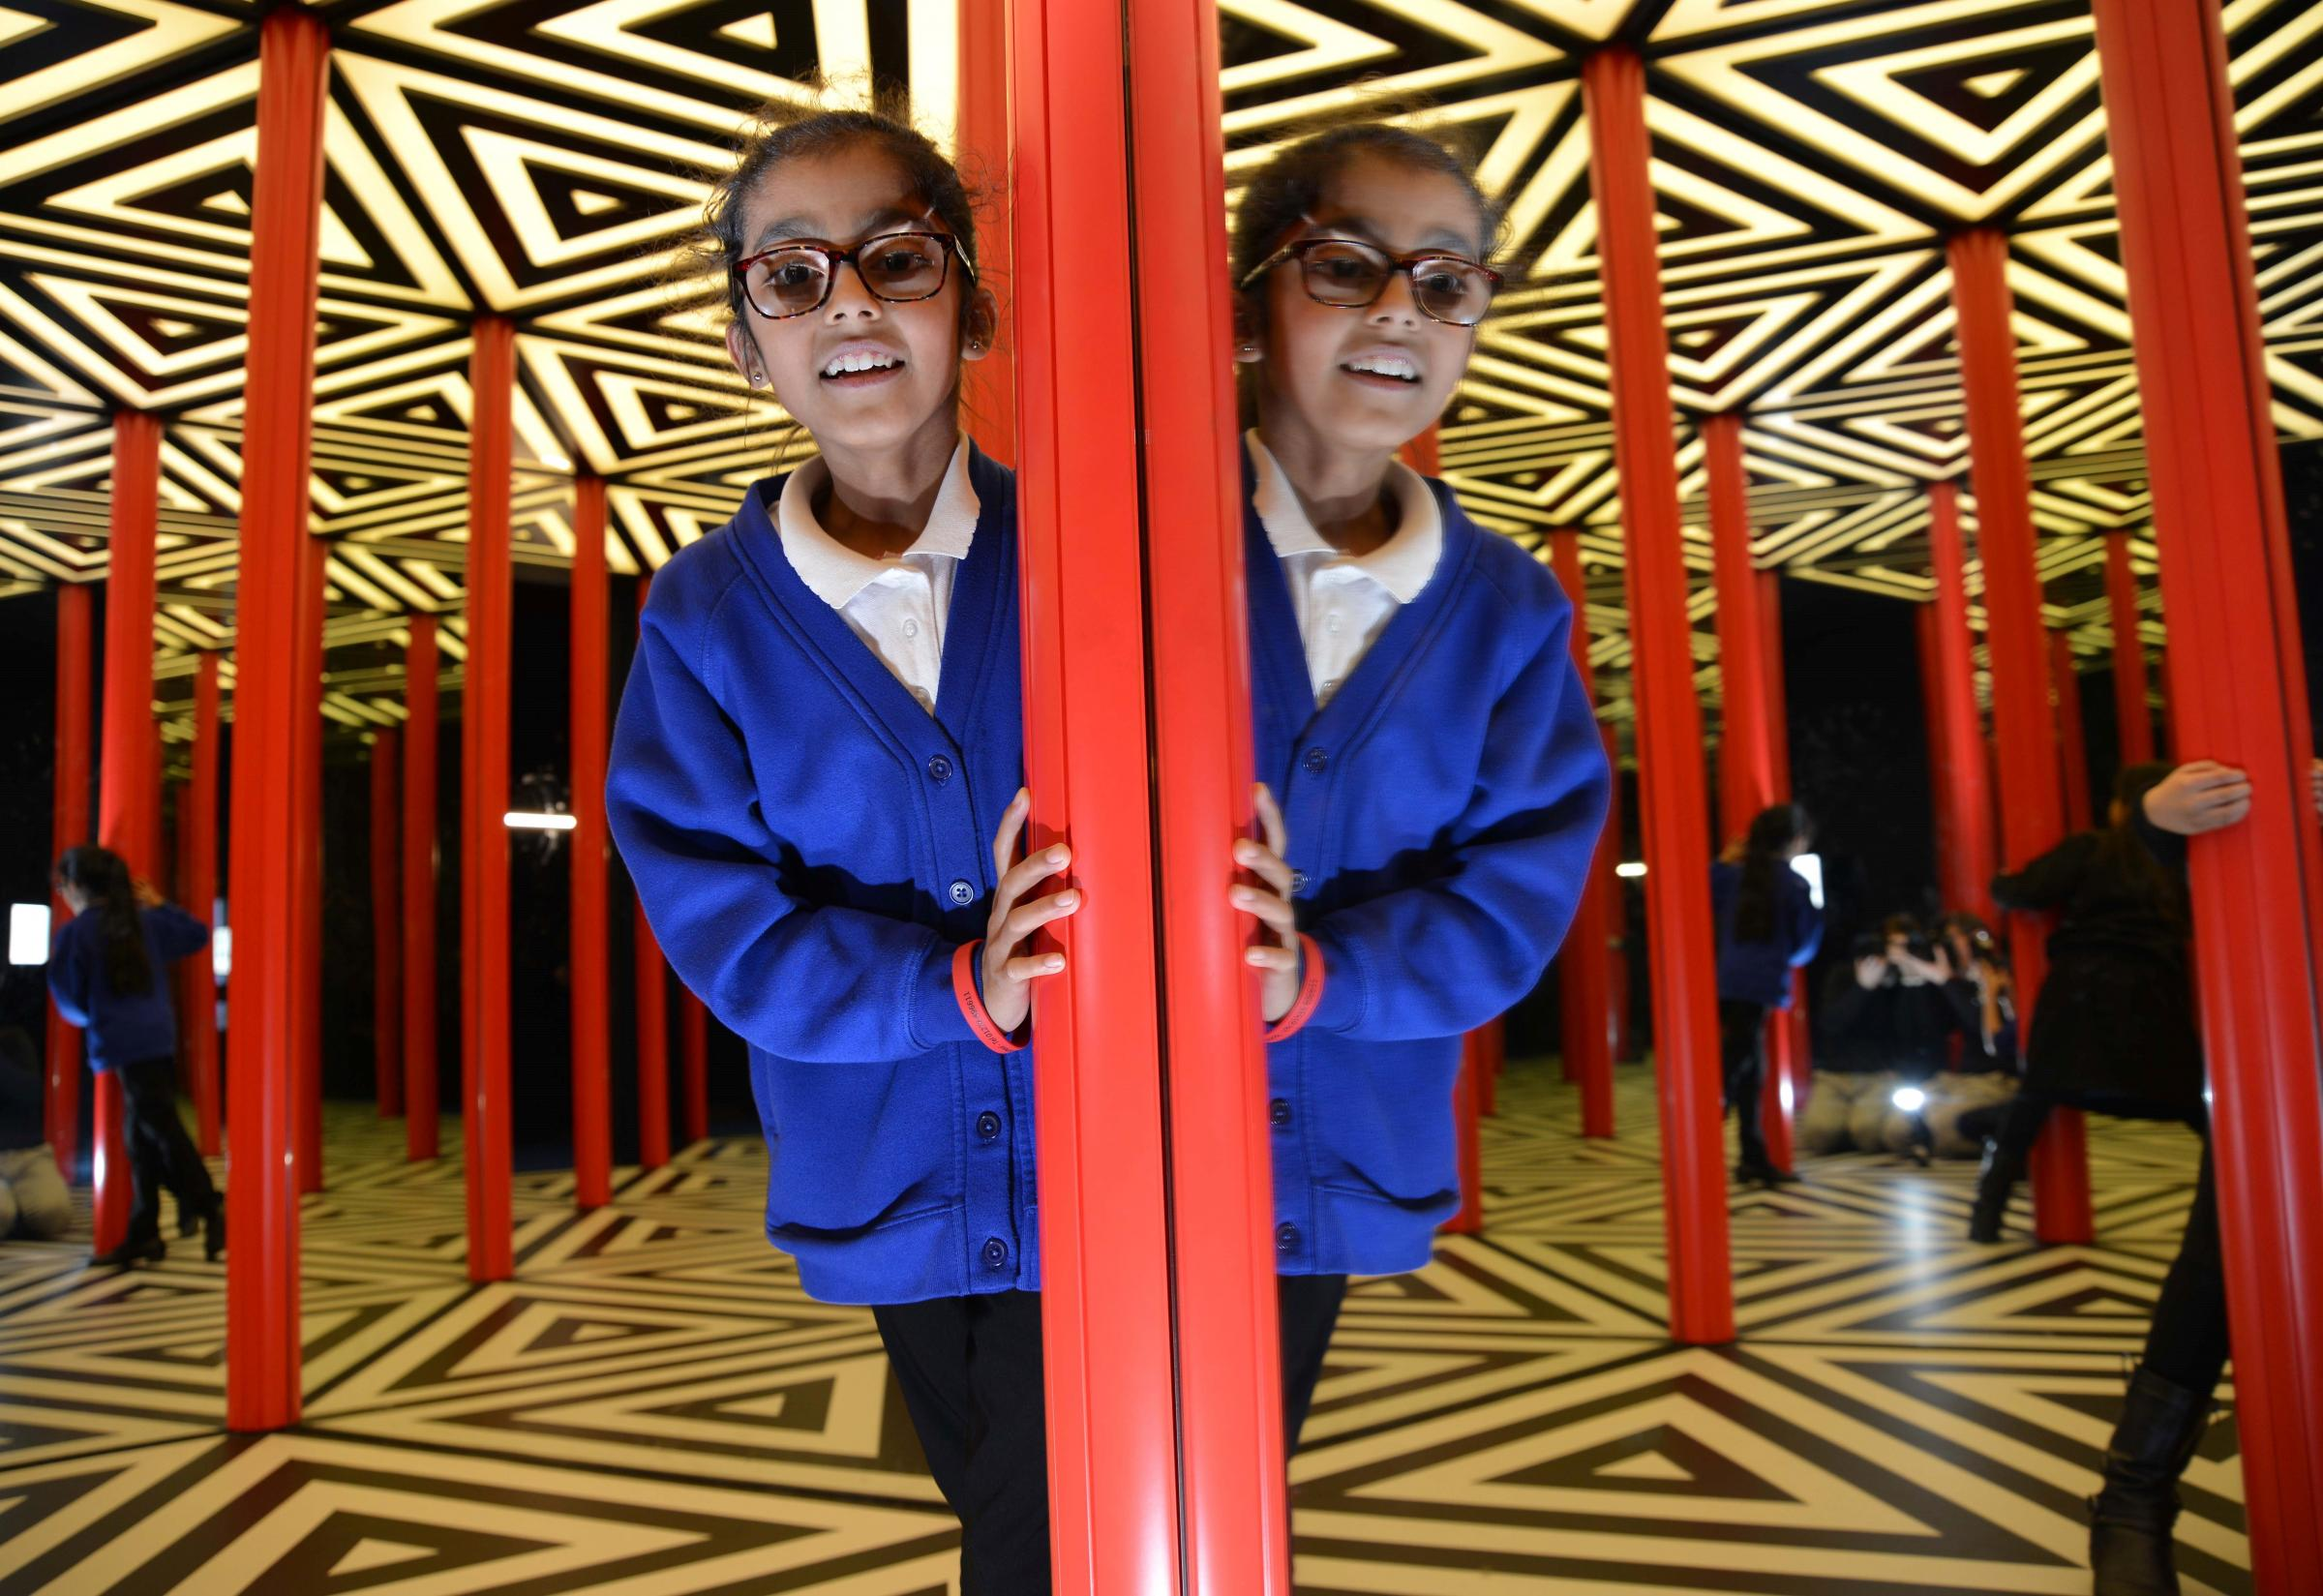 Visitor numbers up at National Science and Media Museum after opening of Wonderlab